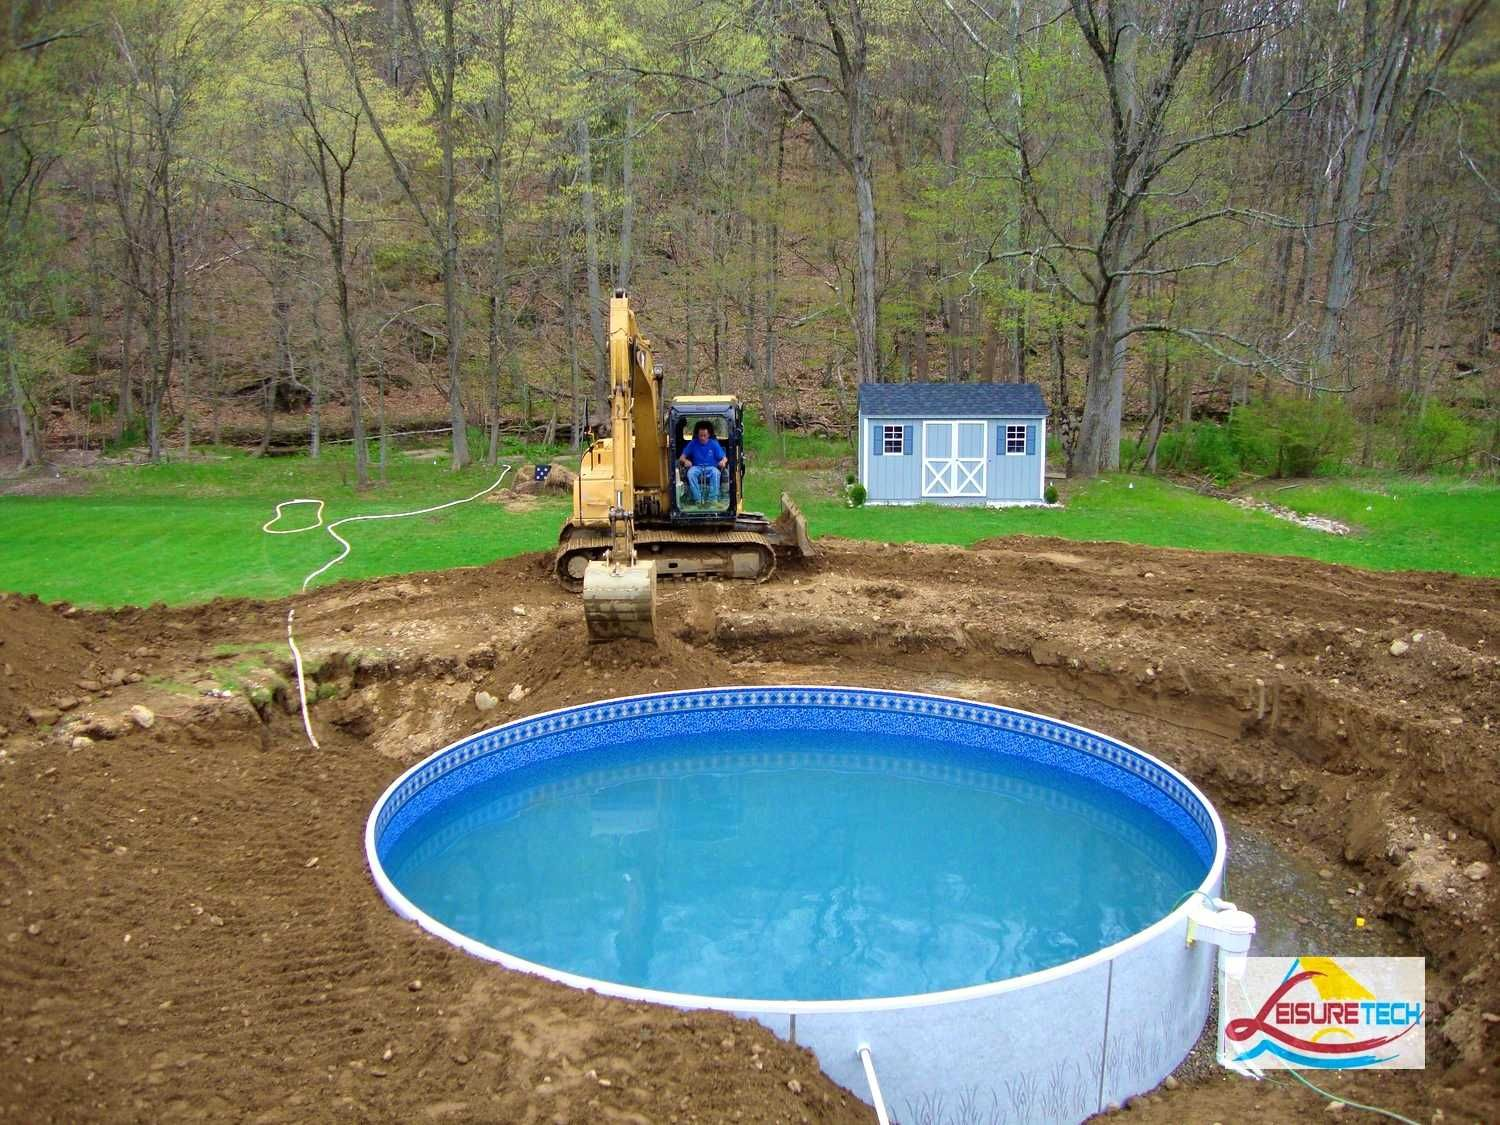 Above ground pool landscaping ideas on a budget round